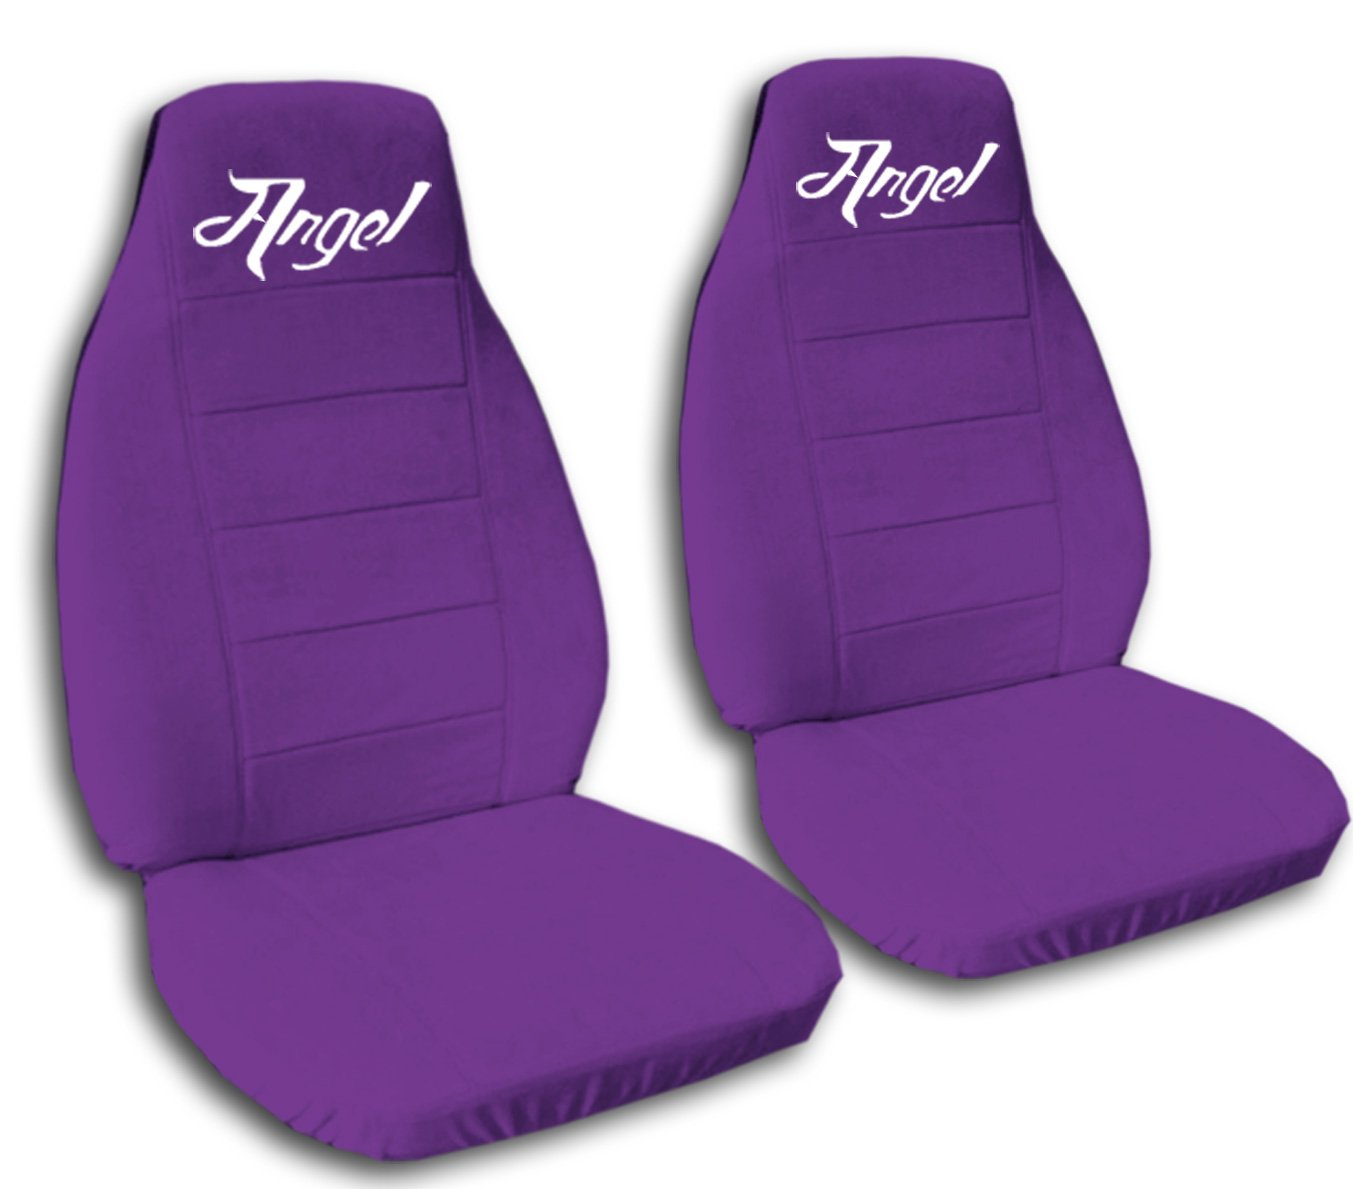 Amazon 2010 VW Jetta Seat Covers Automotive